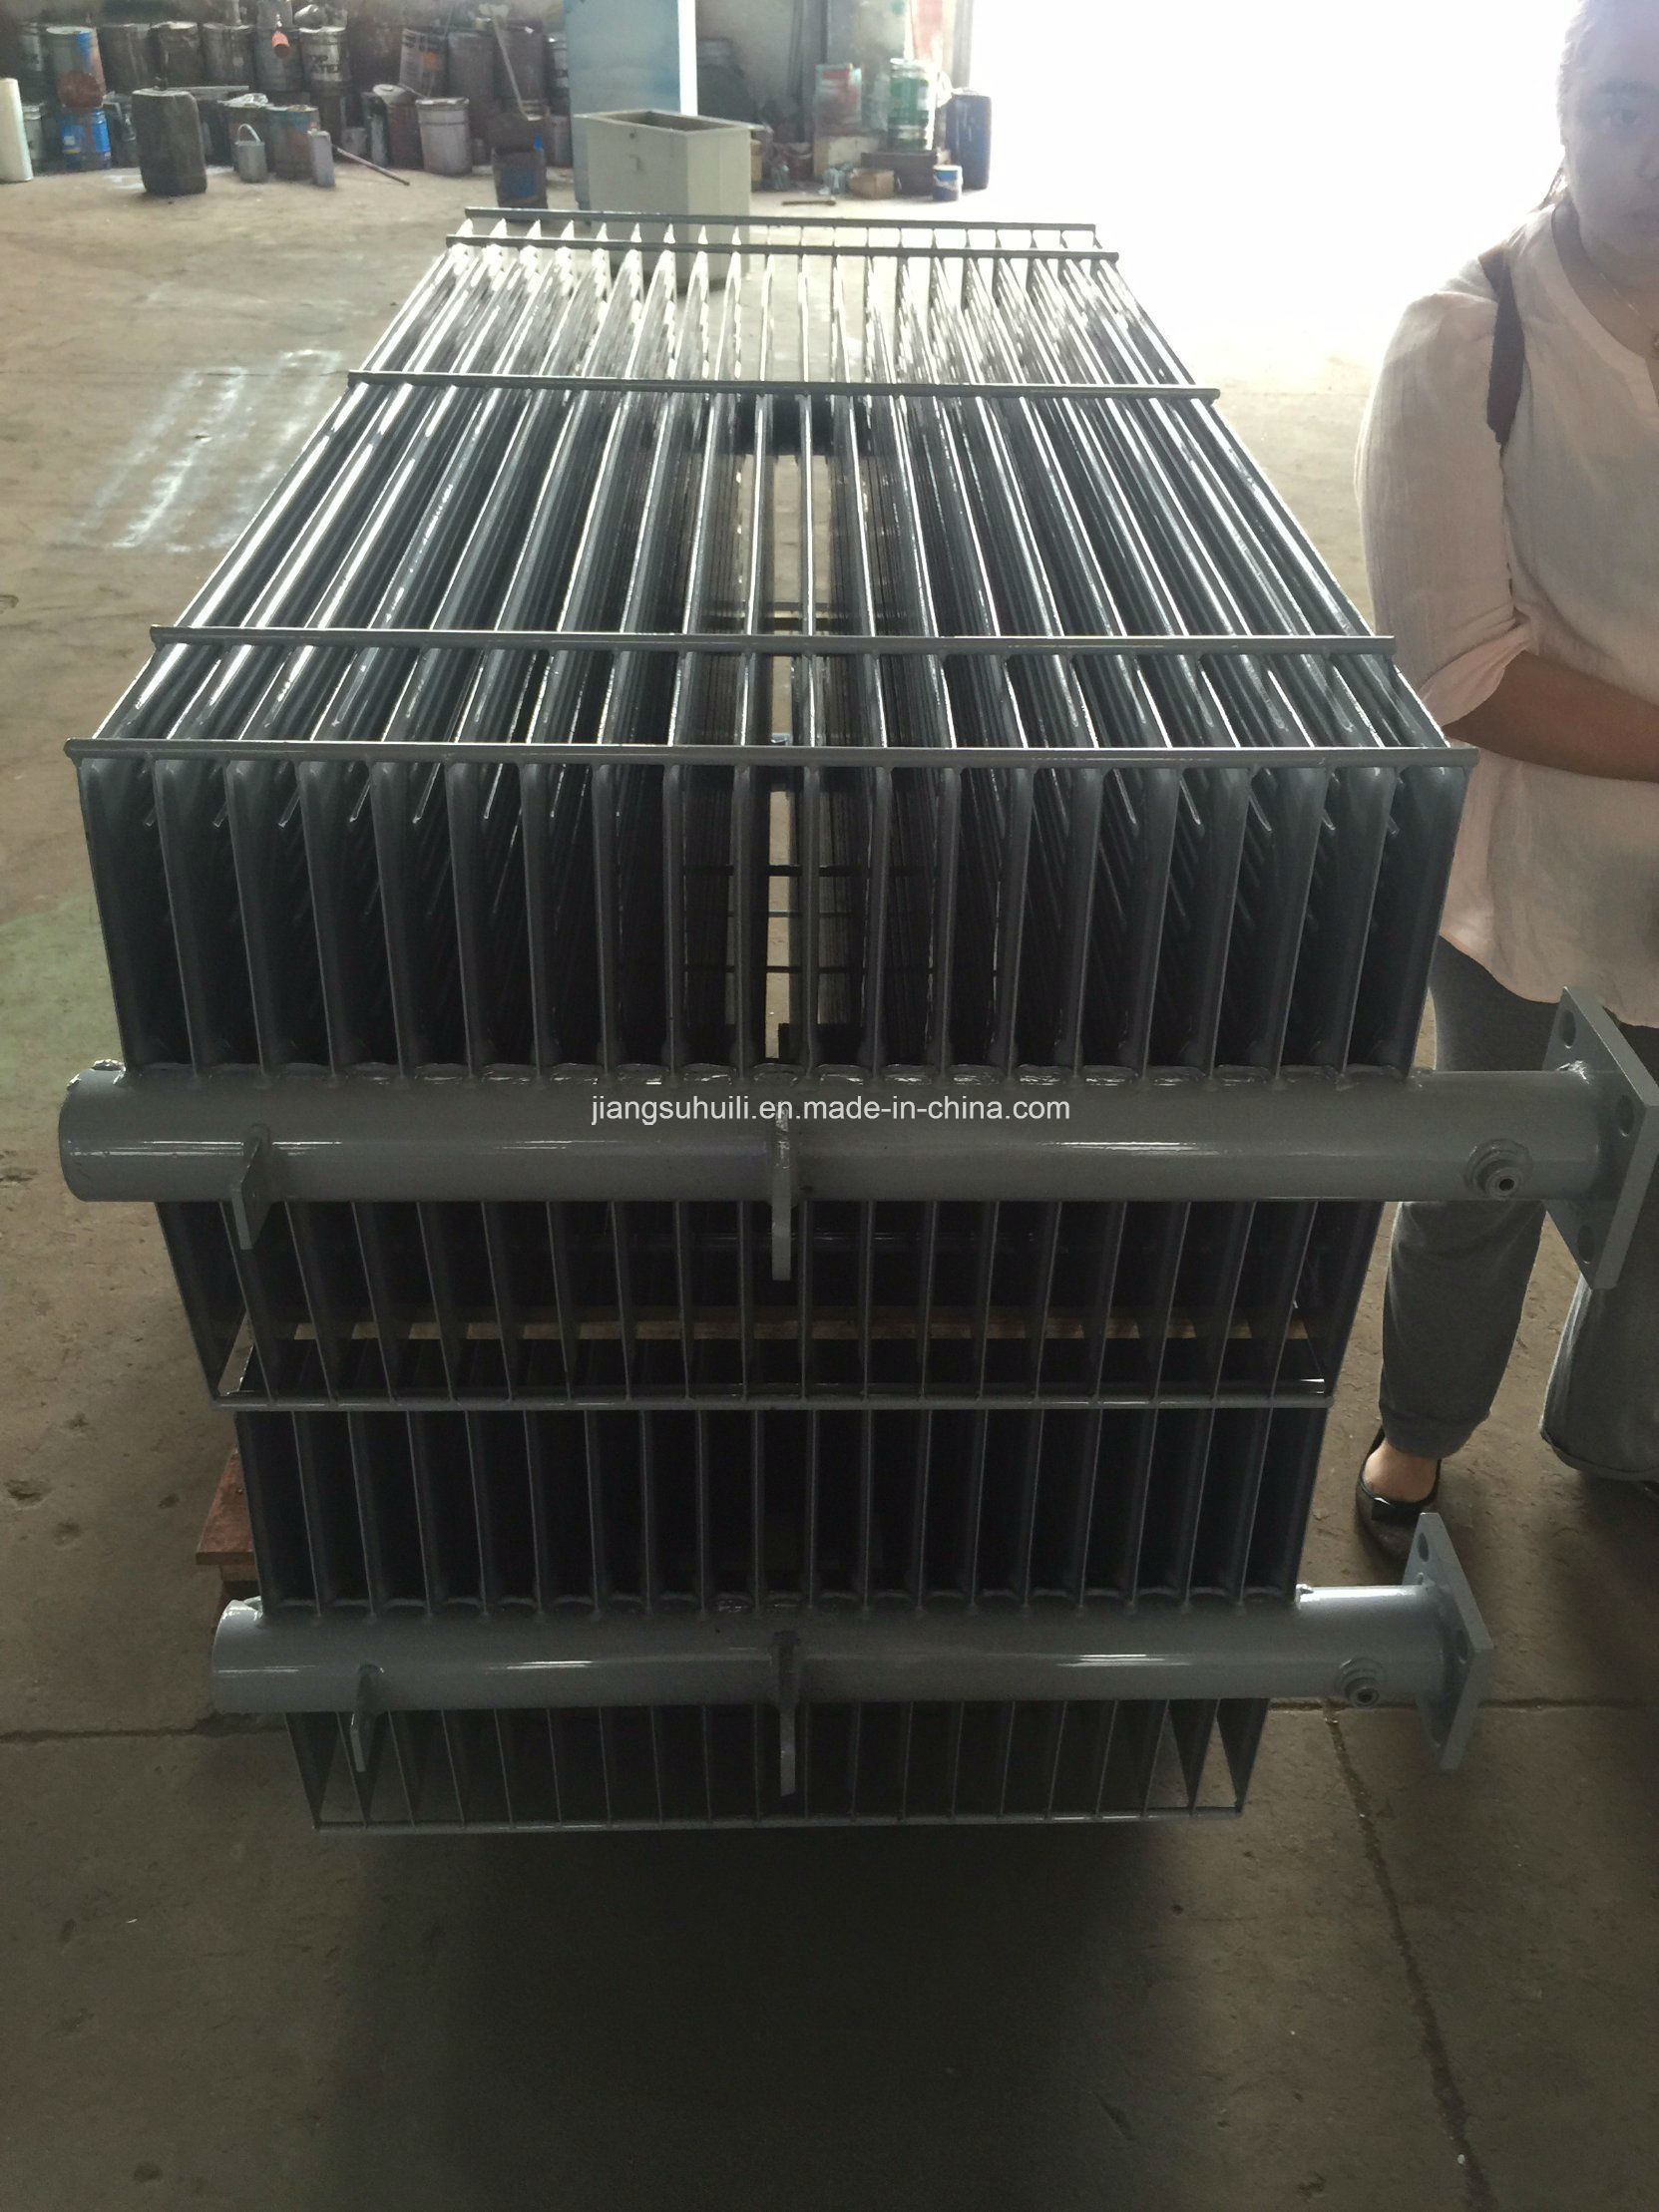 1500kVA Oil-Immersed Transformer Radiator